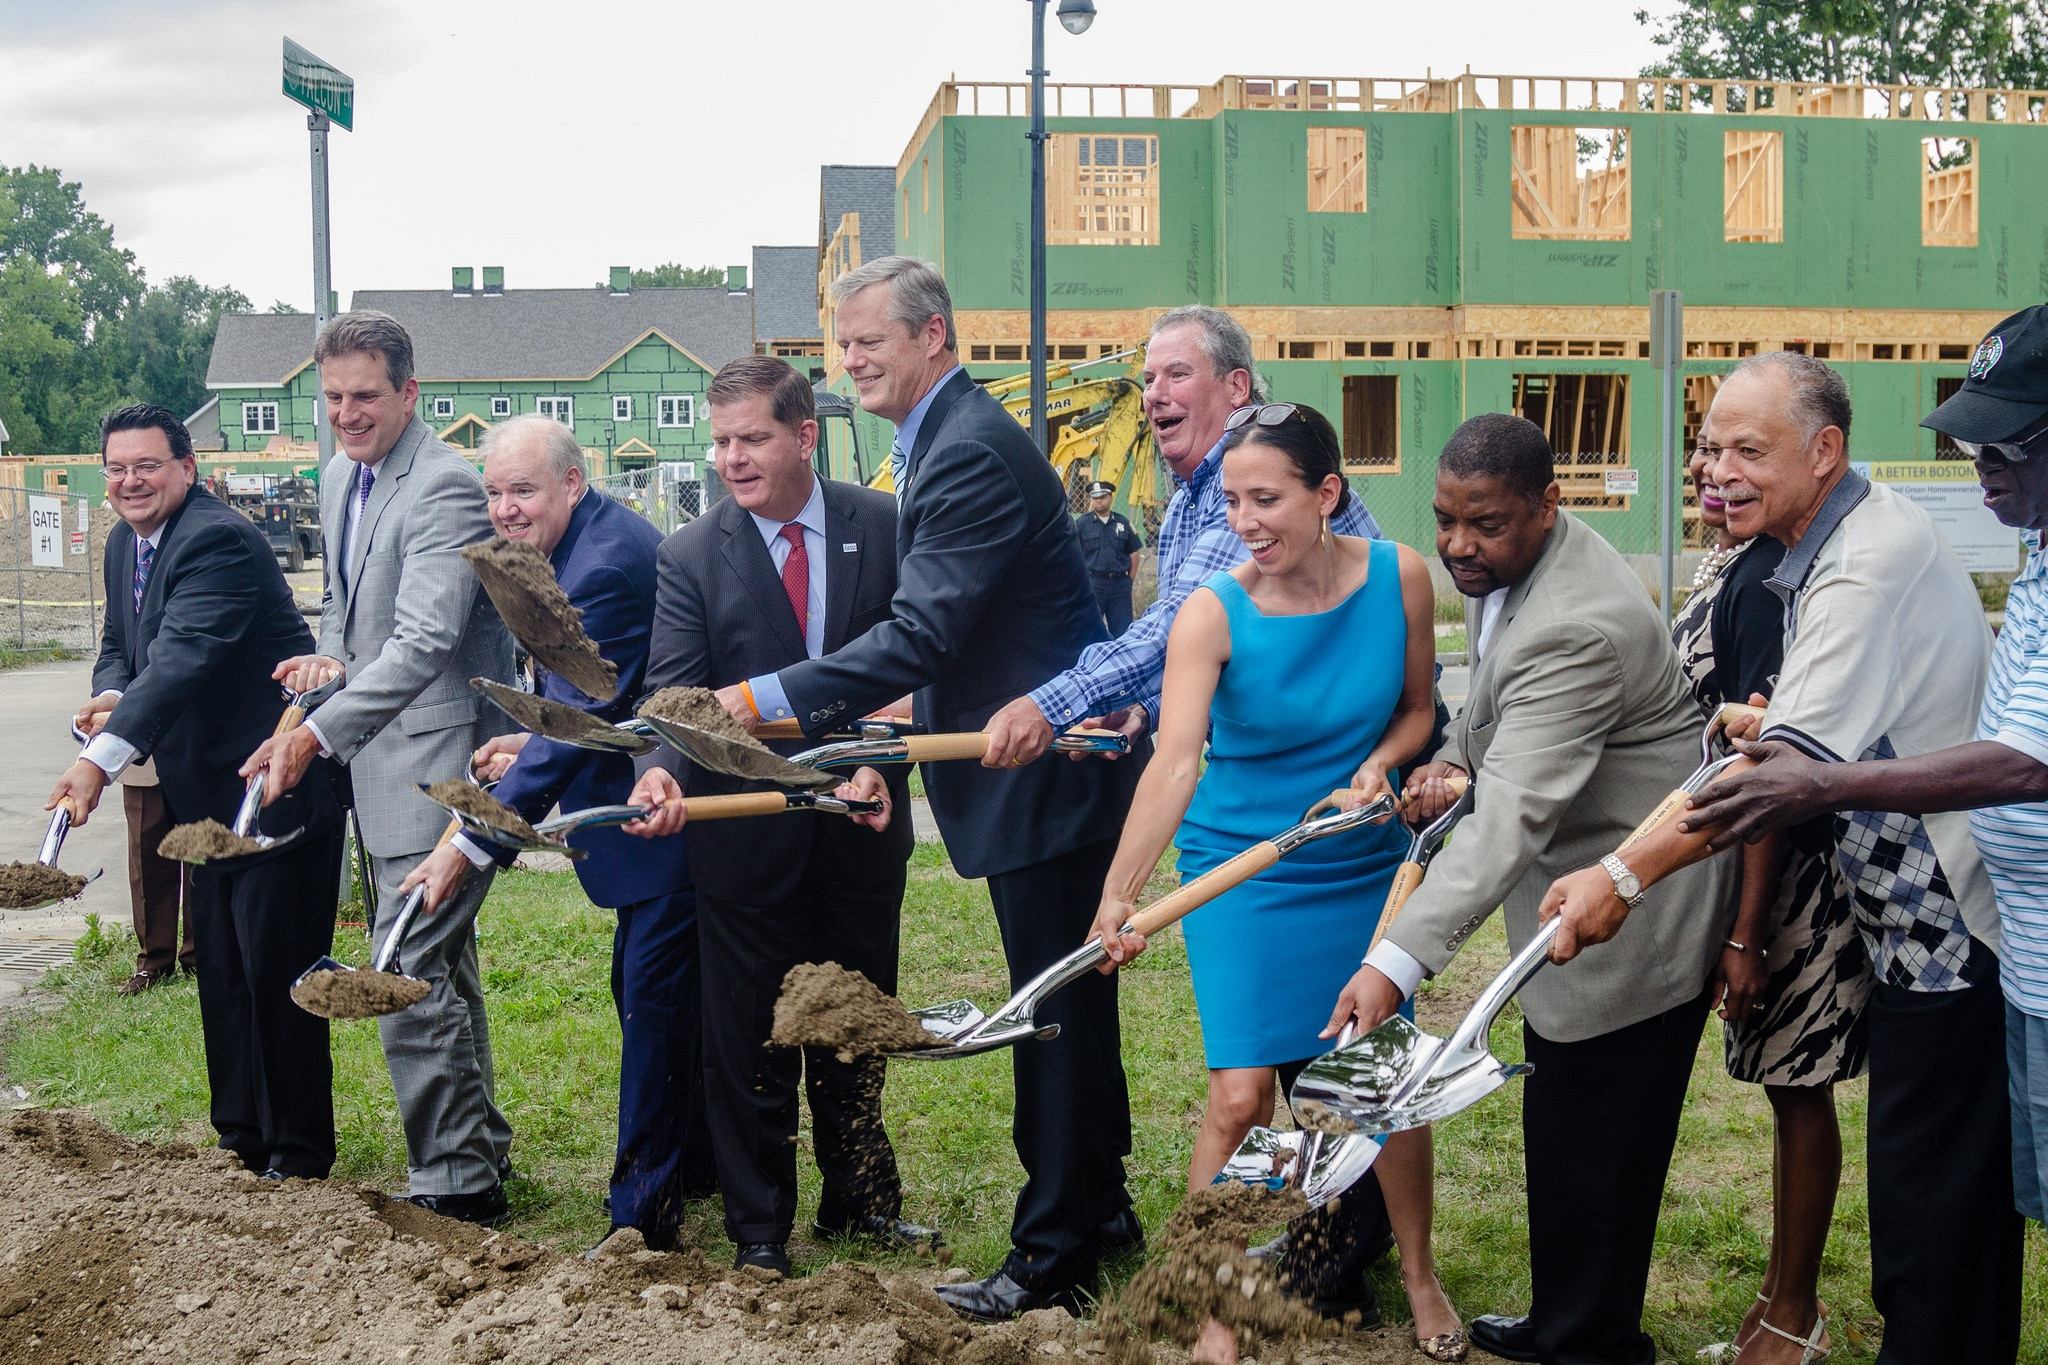 Governor Baker and others break ground on affordable housing in Boston.